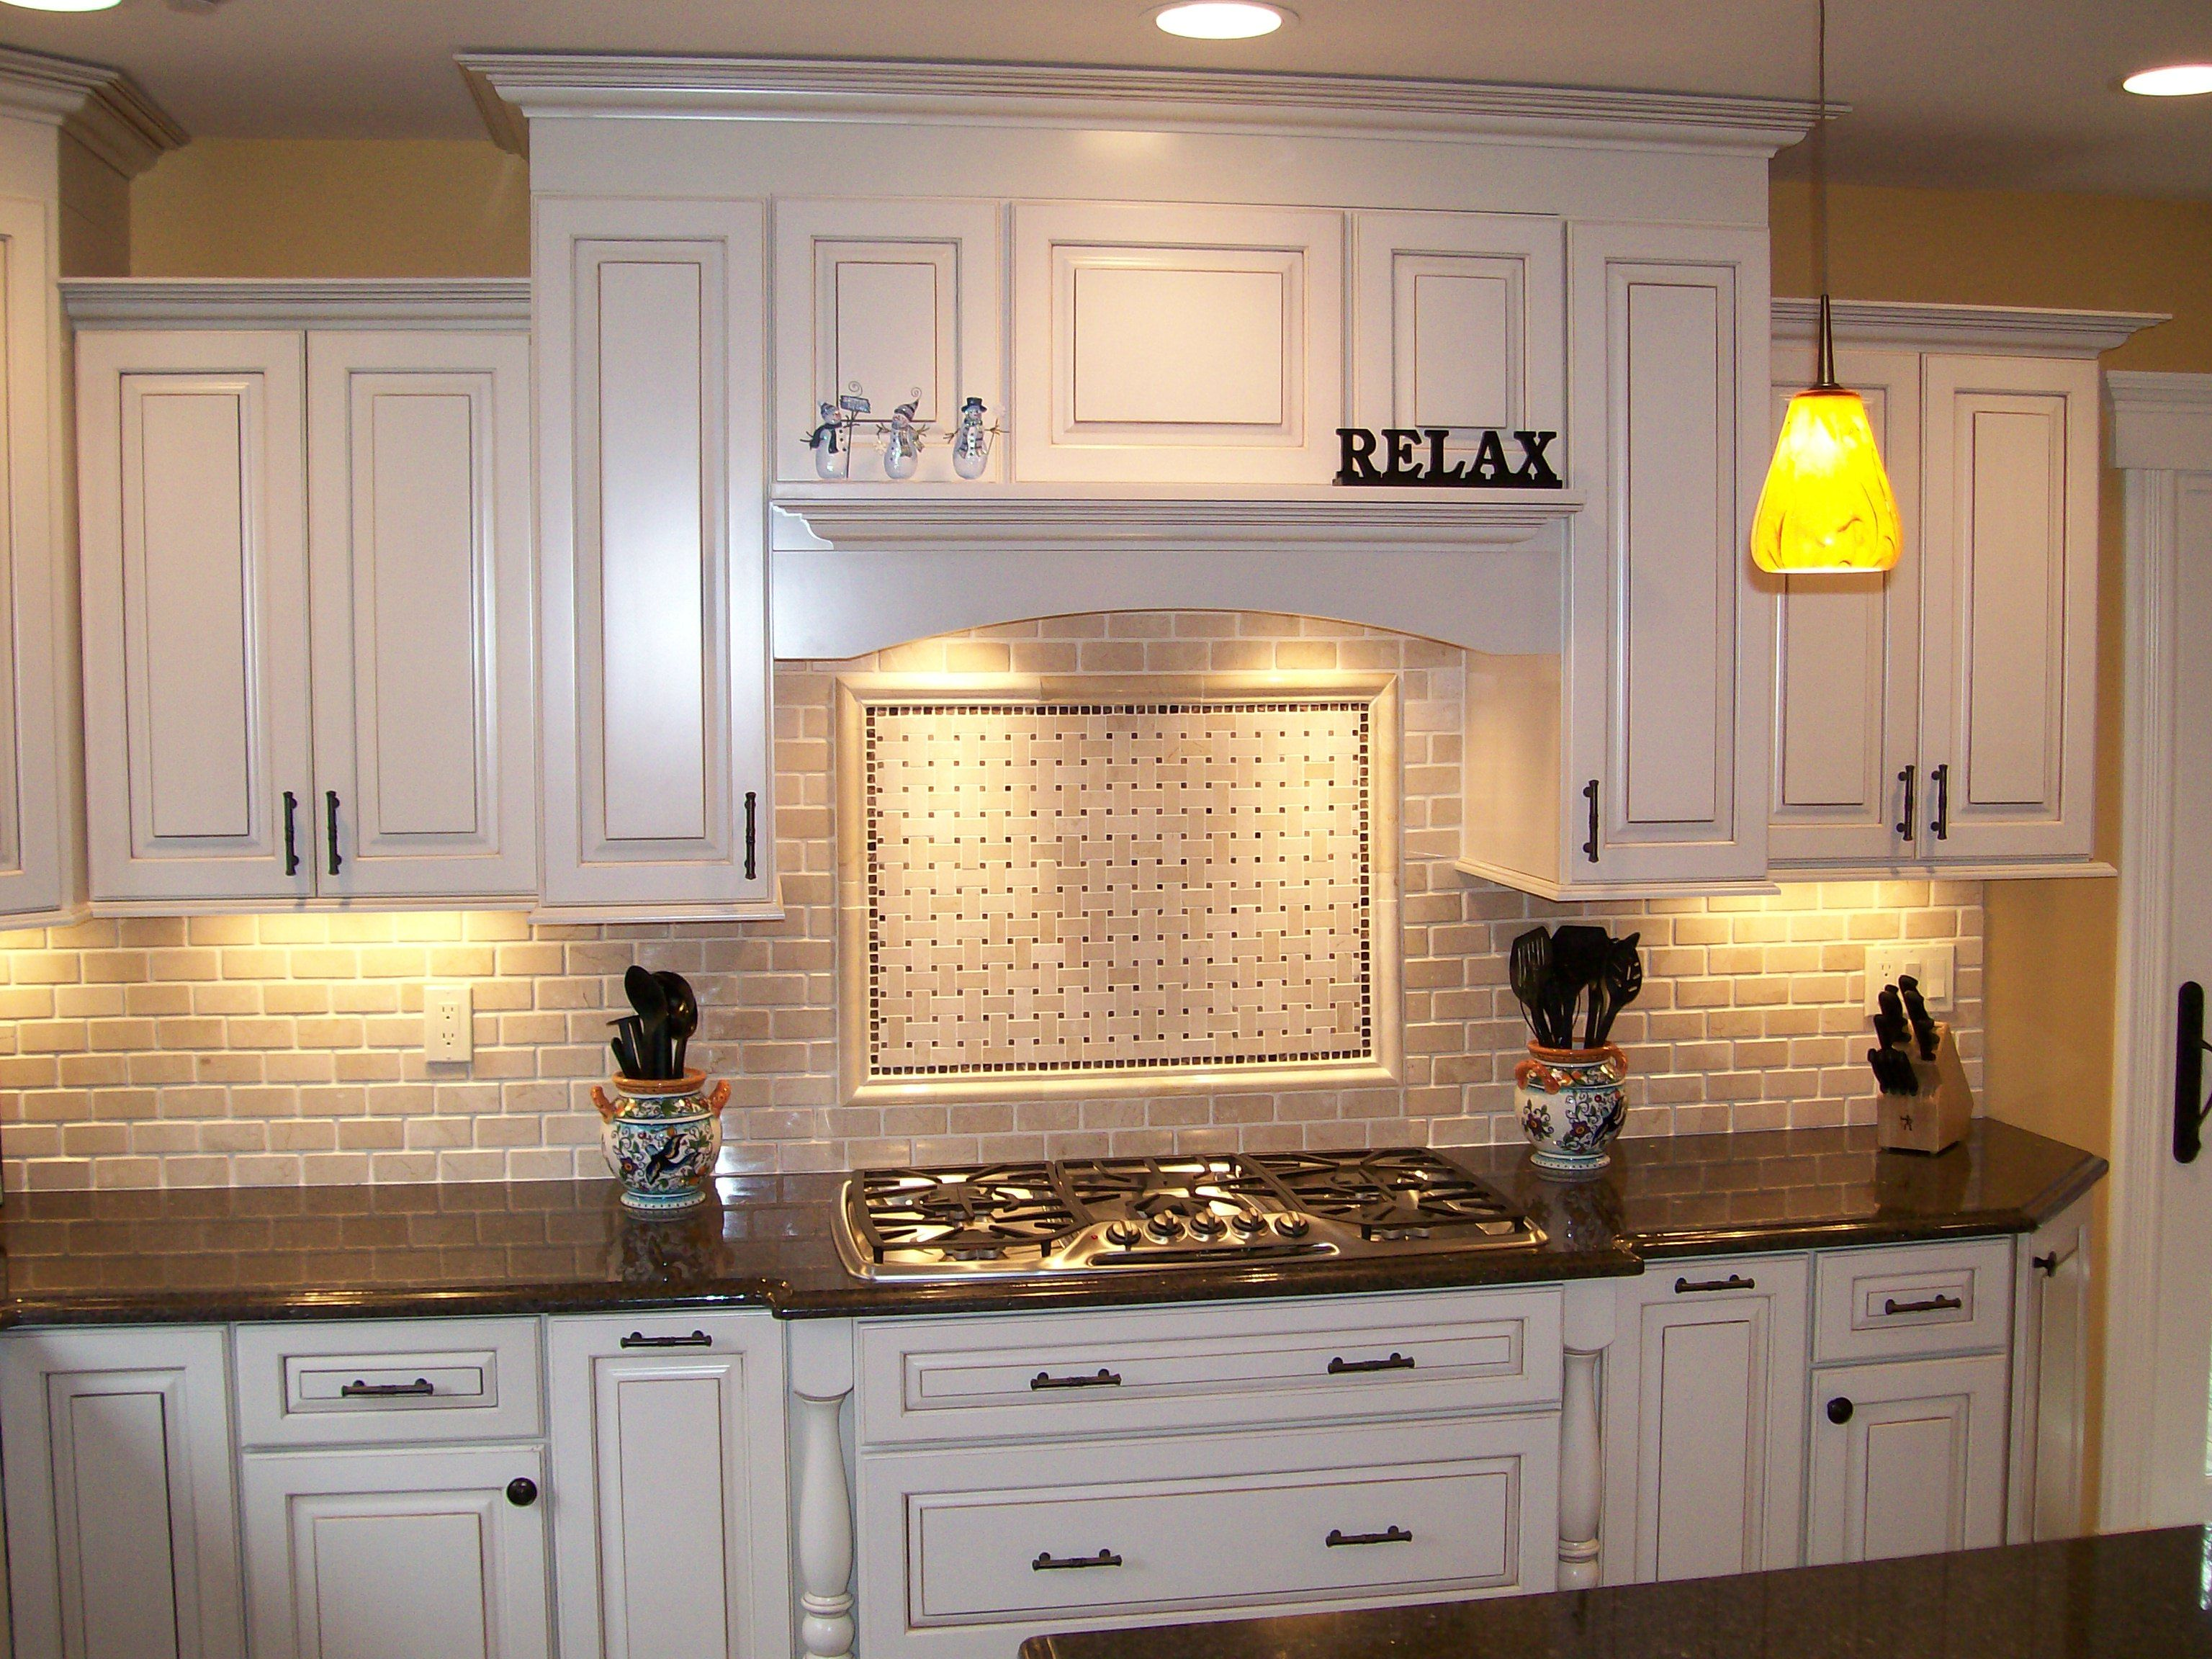 Uncategorized Kitchen Backsplash Colors kitchen nice brick backsplash in with white cabinet and storage black countertop and